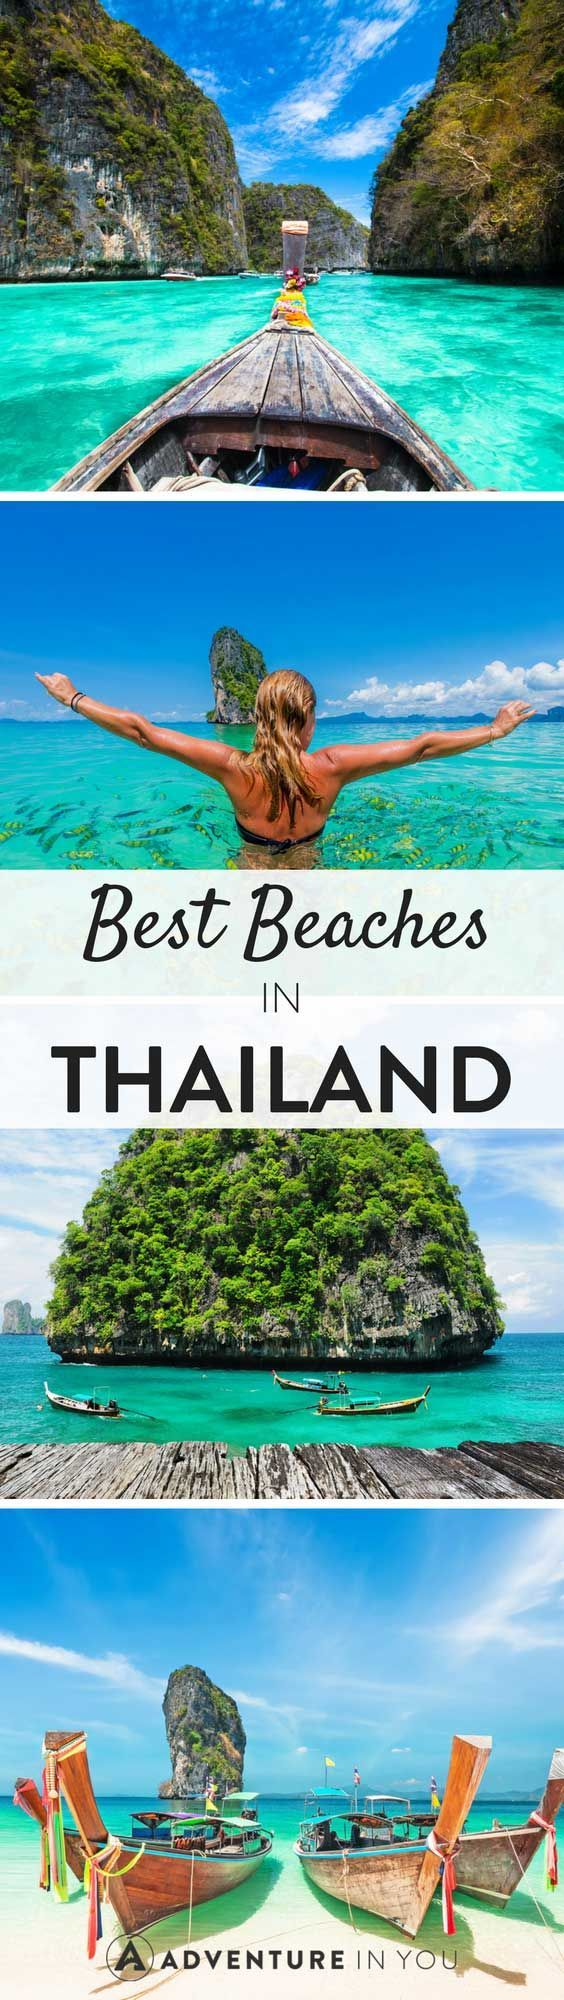 Explore some of the best beaches in Thailand, the land of smiles.